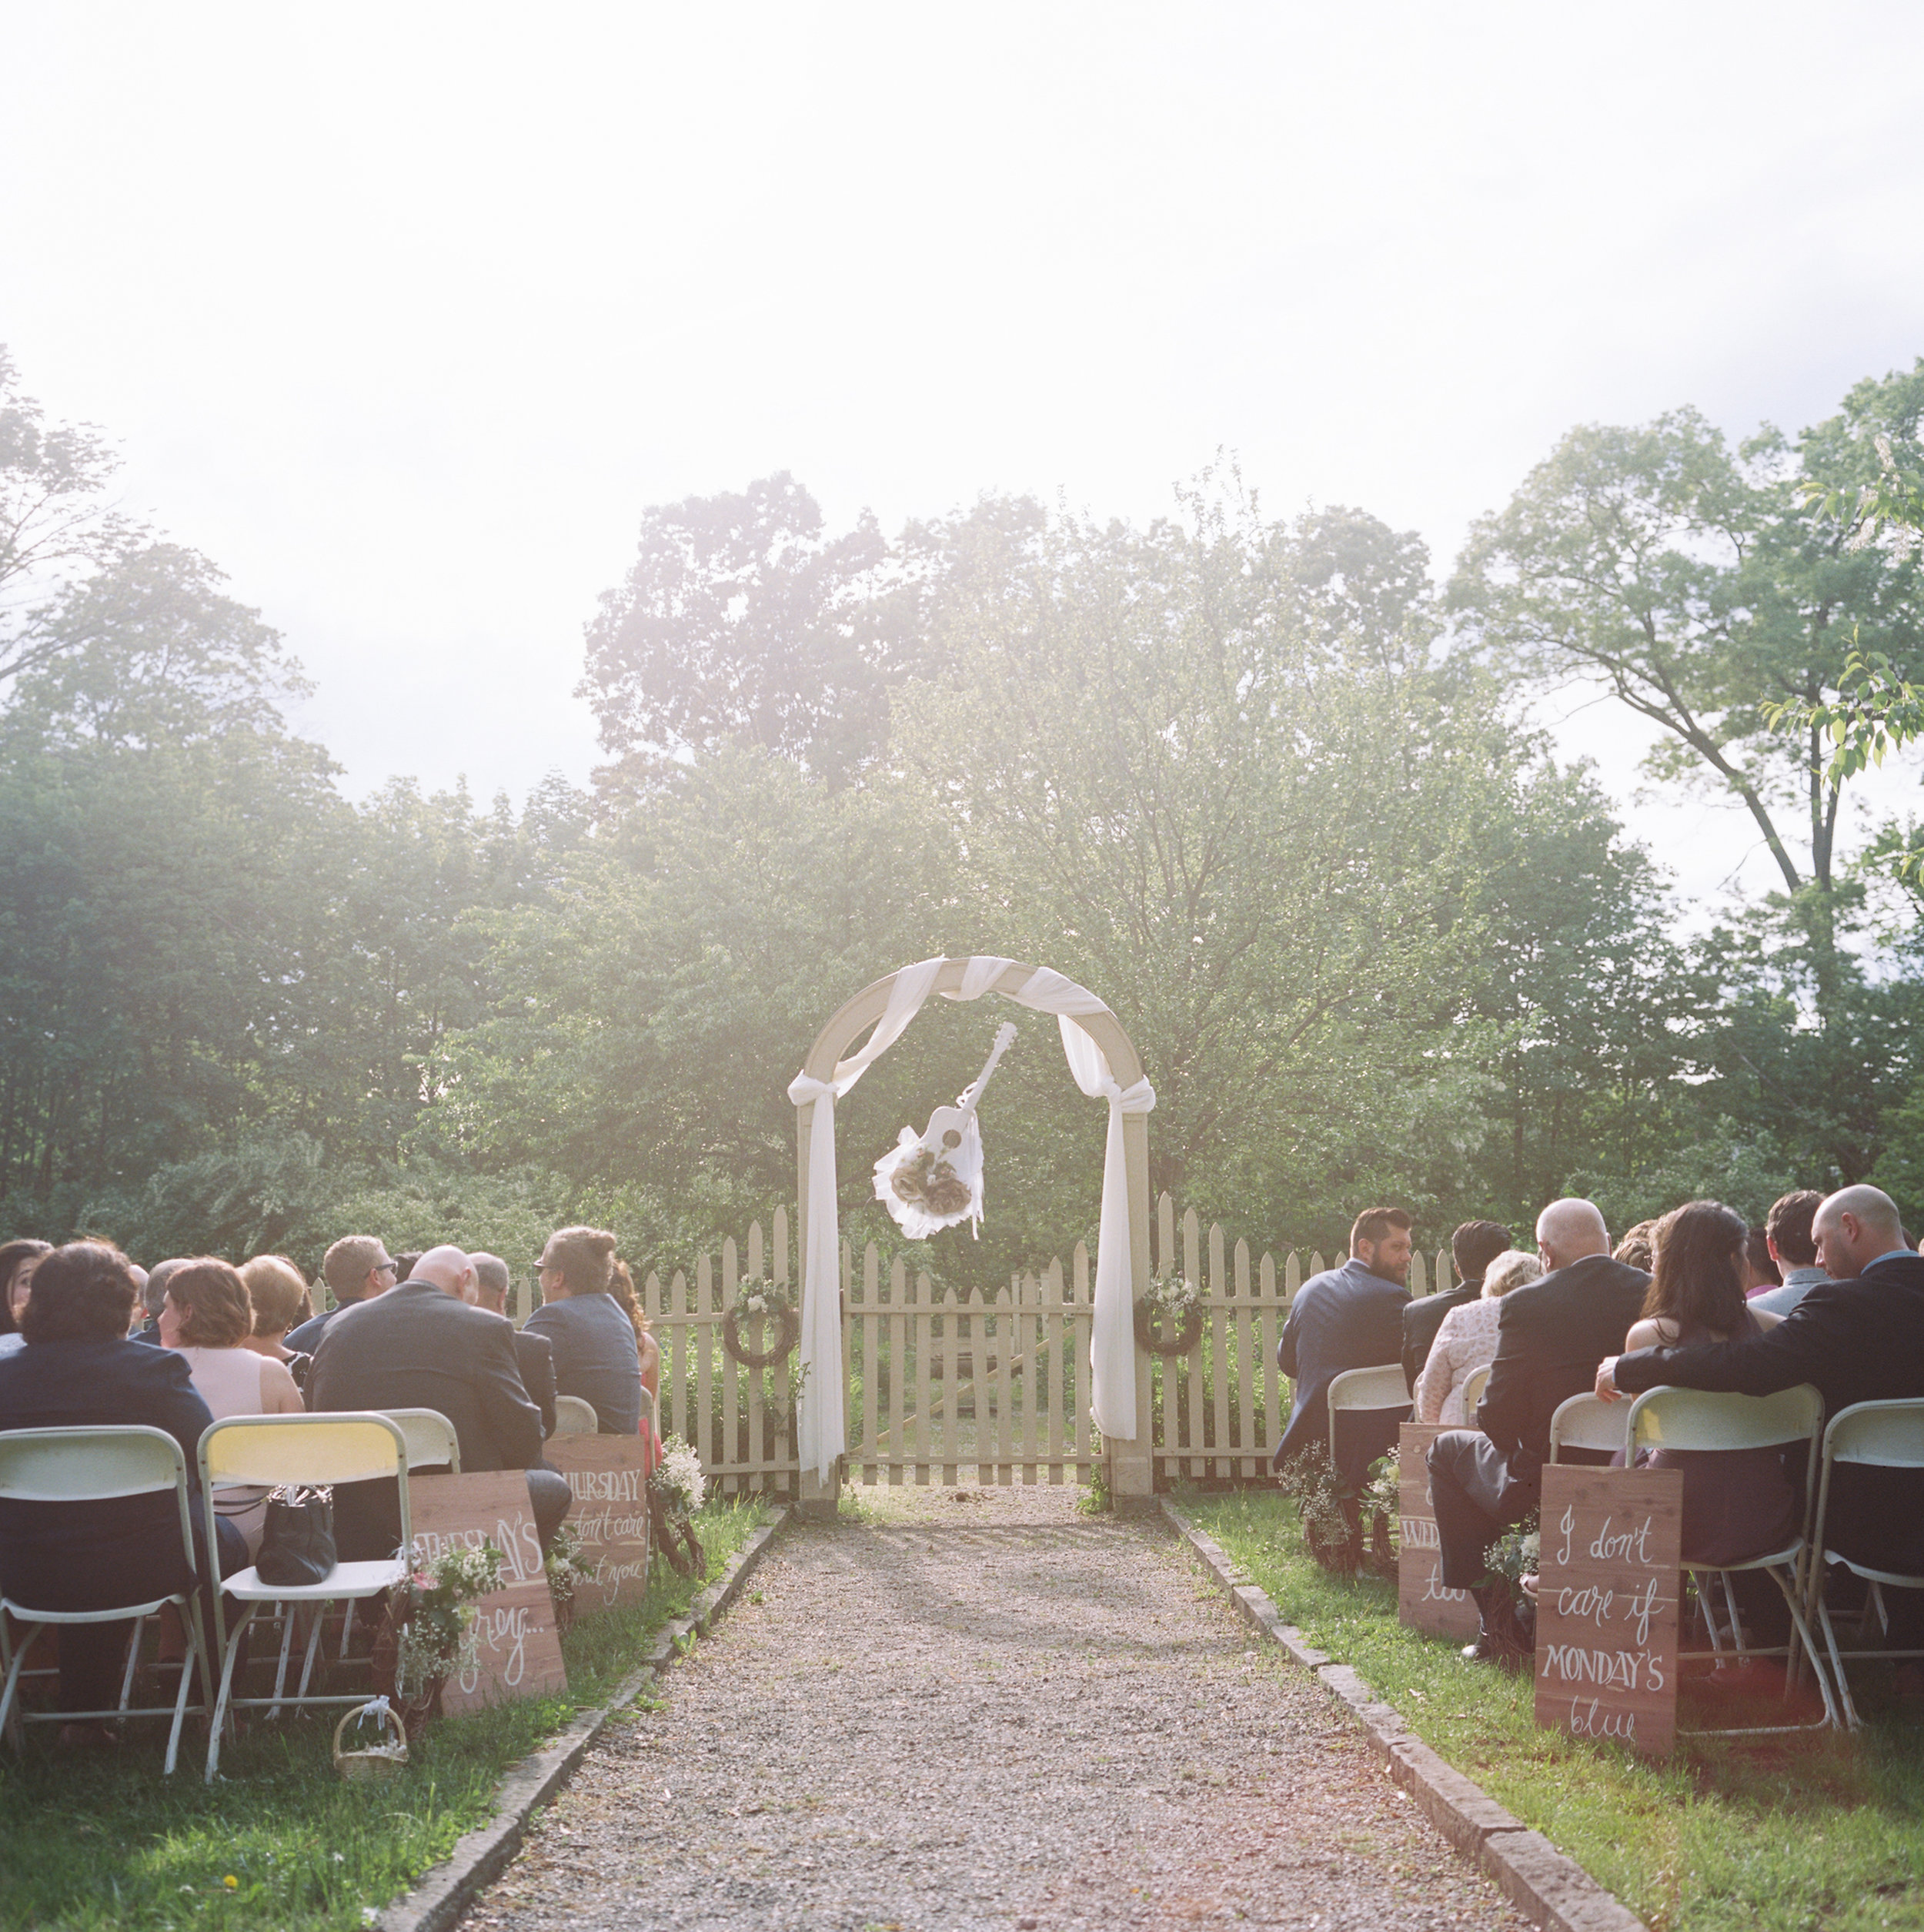 Mariangel+Kieran-Oakeside Mansion Wedding-Bloomfield New Jersey-Film Photography- Olivia Christina Photo-1 (8).JPG